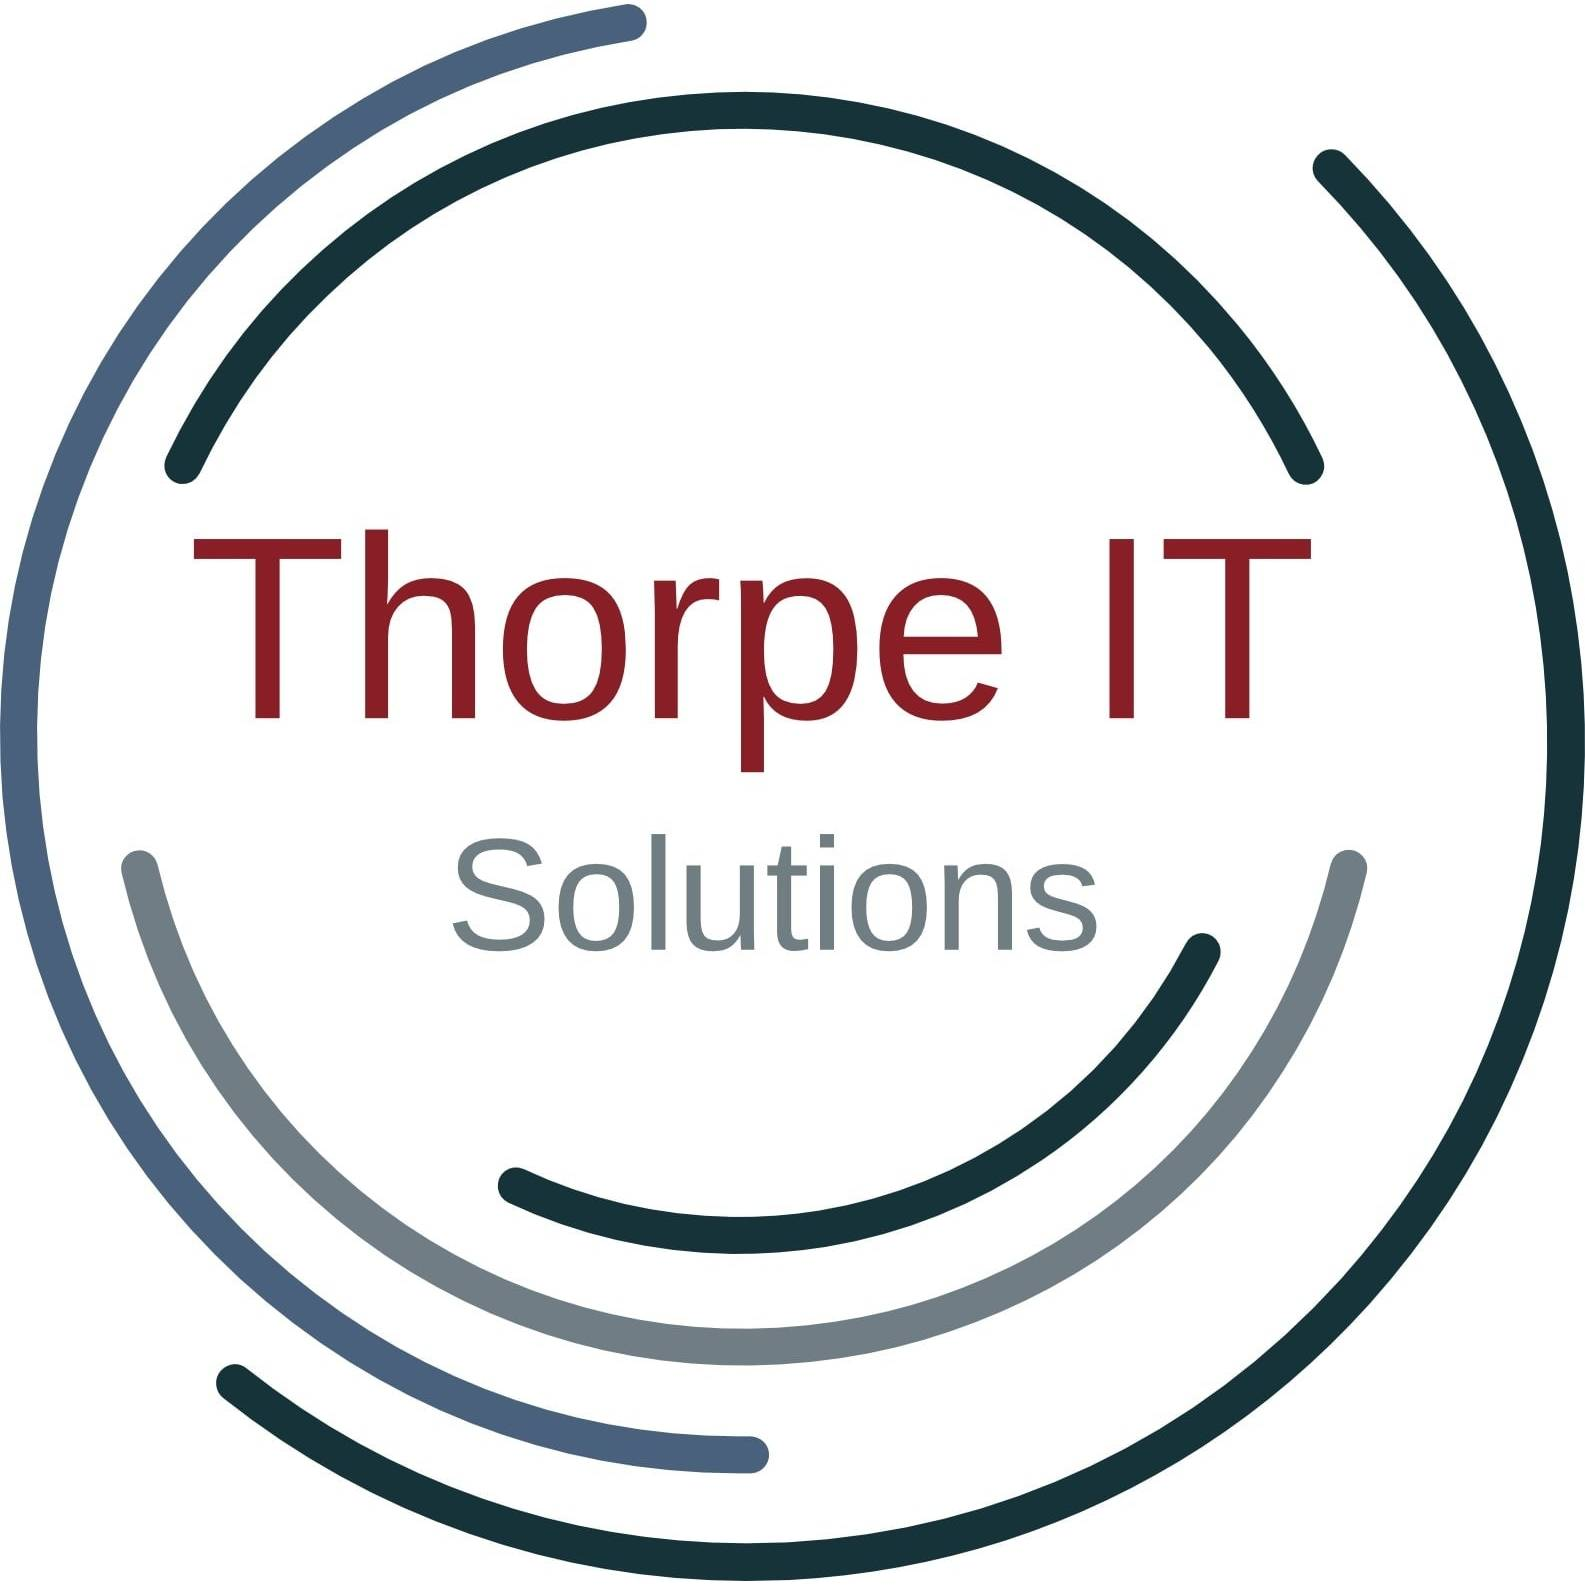 Thorpe IT Solutions Ltd - Sheffield, South Yorkshire S35 9WT - 07986 813830 | ShowMeLocal.com